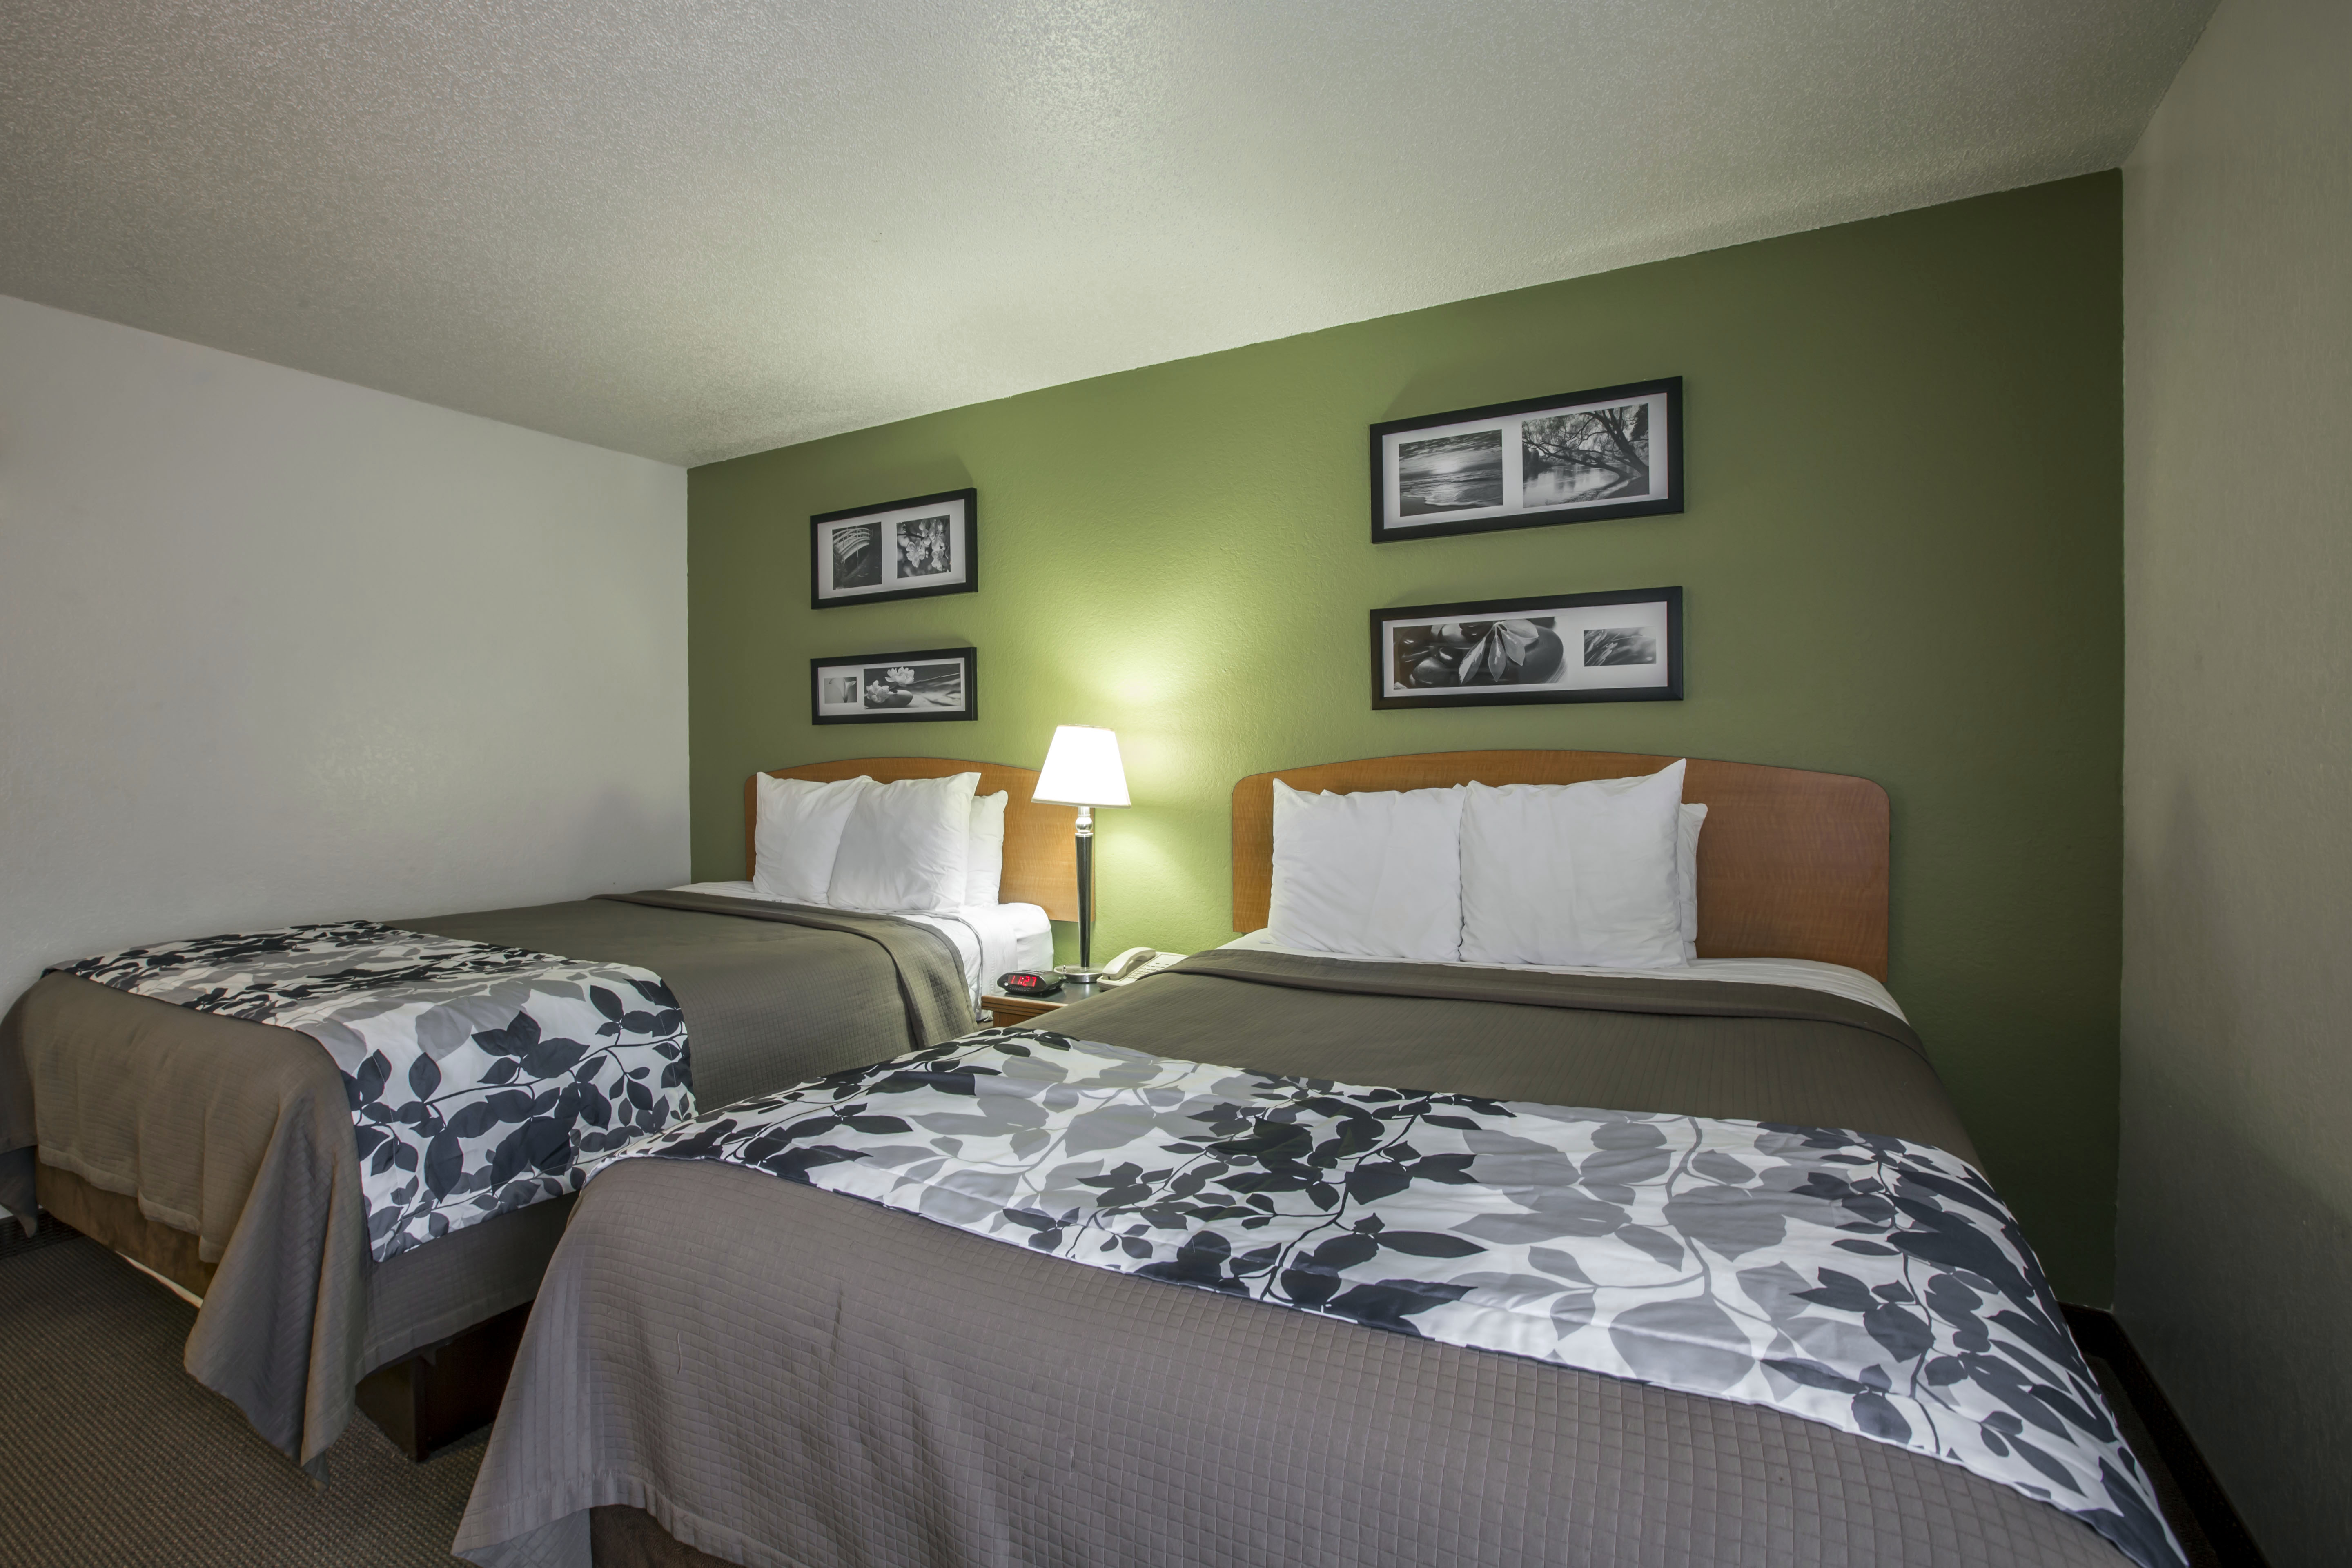 Hotels In Gatlinburg Tn With Adjoining Rooms